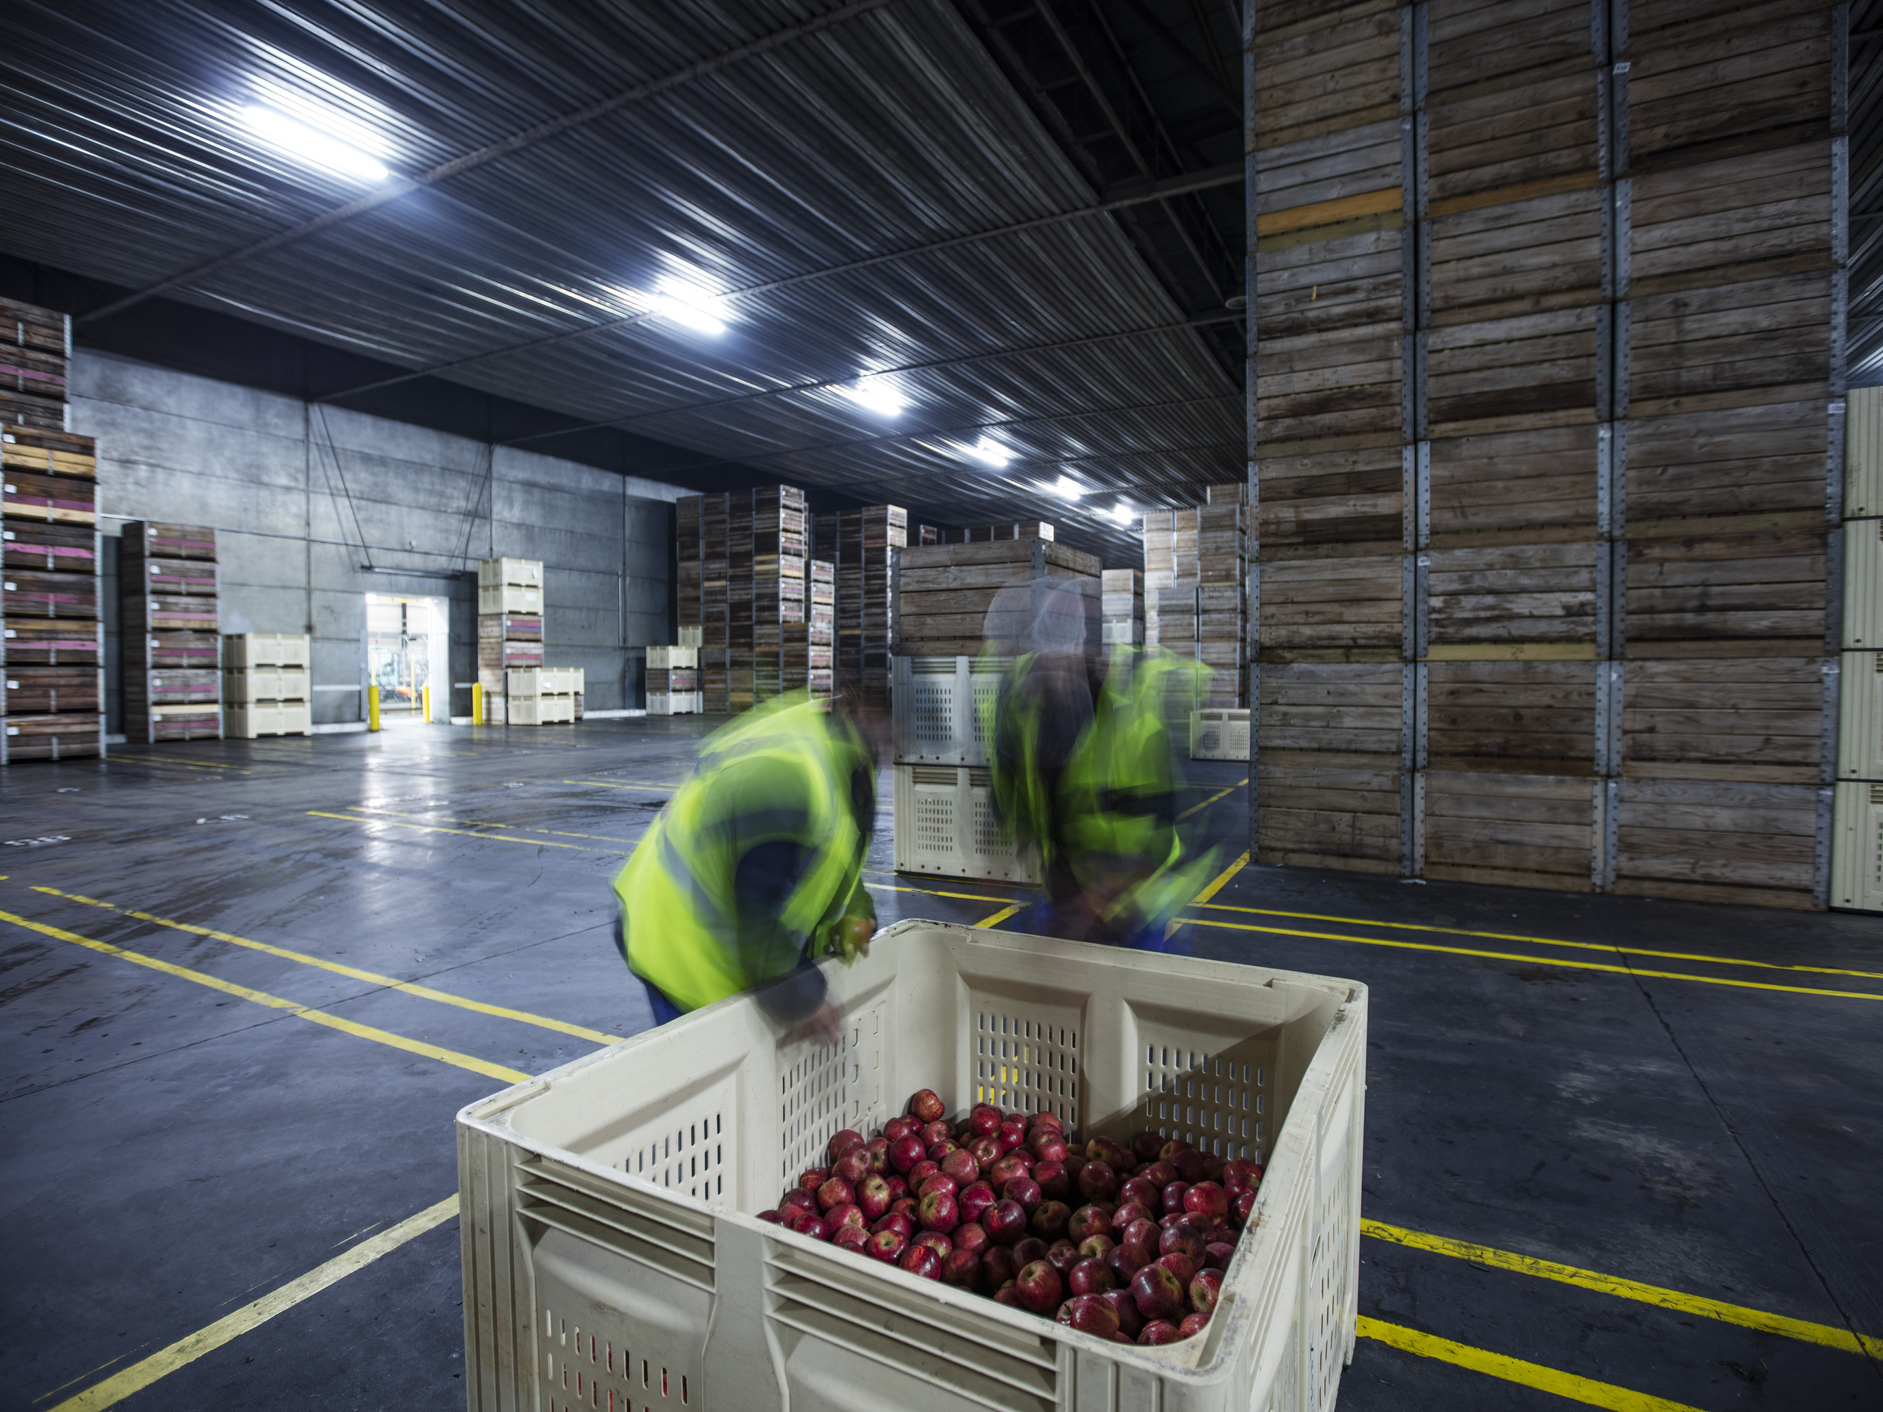 Different apples need different controlled storage environments. For example, Honeycrisps are sensitive to low temperatures so you can't put them in cold environments right after they've been harvested. And Fujiscan't takehigh carbon dioxide level. (Getty Images/Westend61)